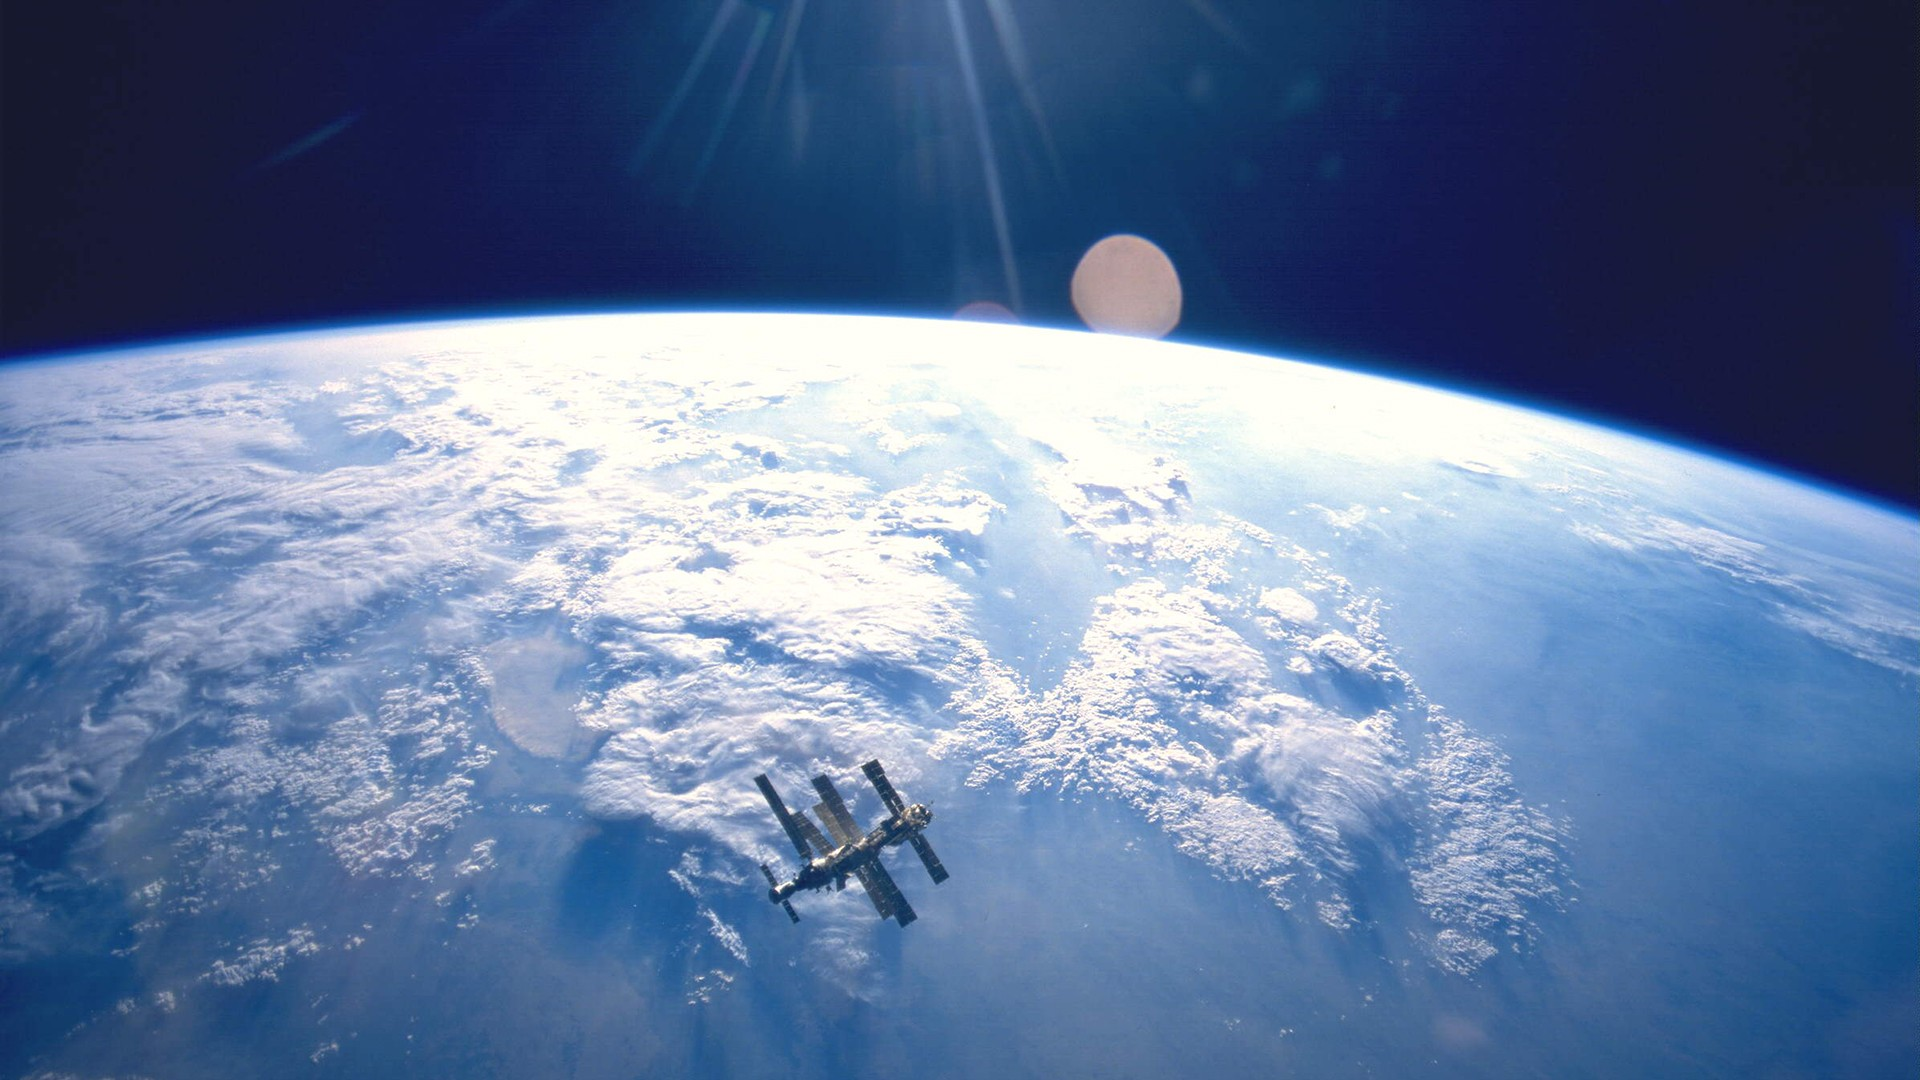 Earth-from-space-wallpaper-backgrounds